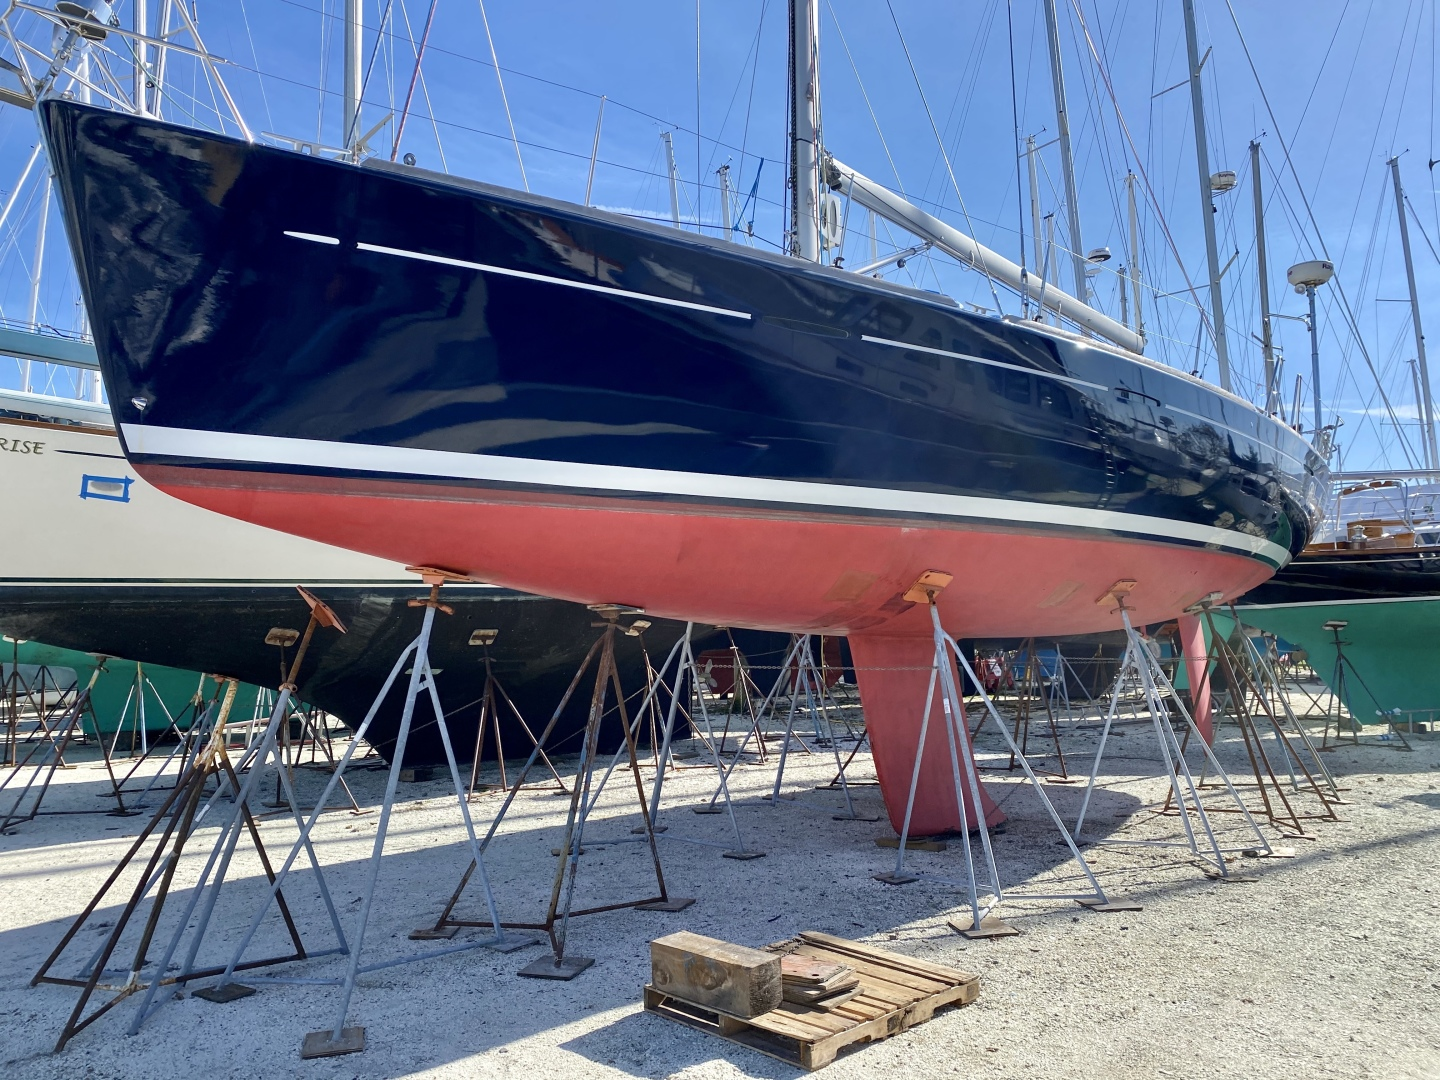 Beneteau-First 47.7 2004 -Portsmouth-Rhode Island-United States-On the Hard for winter-1551516 | Thumbnail